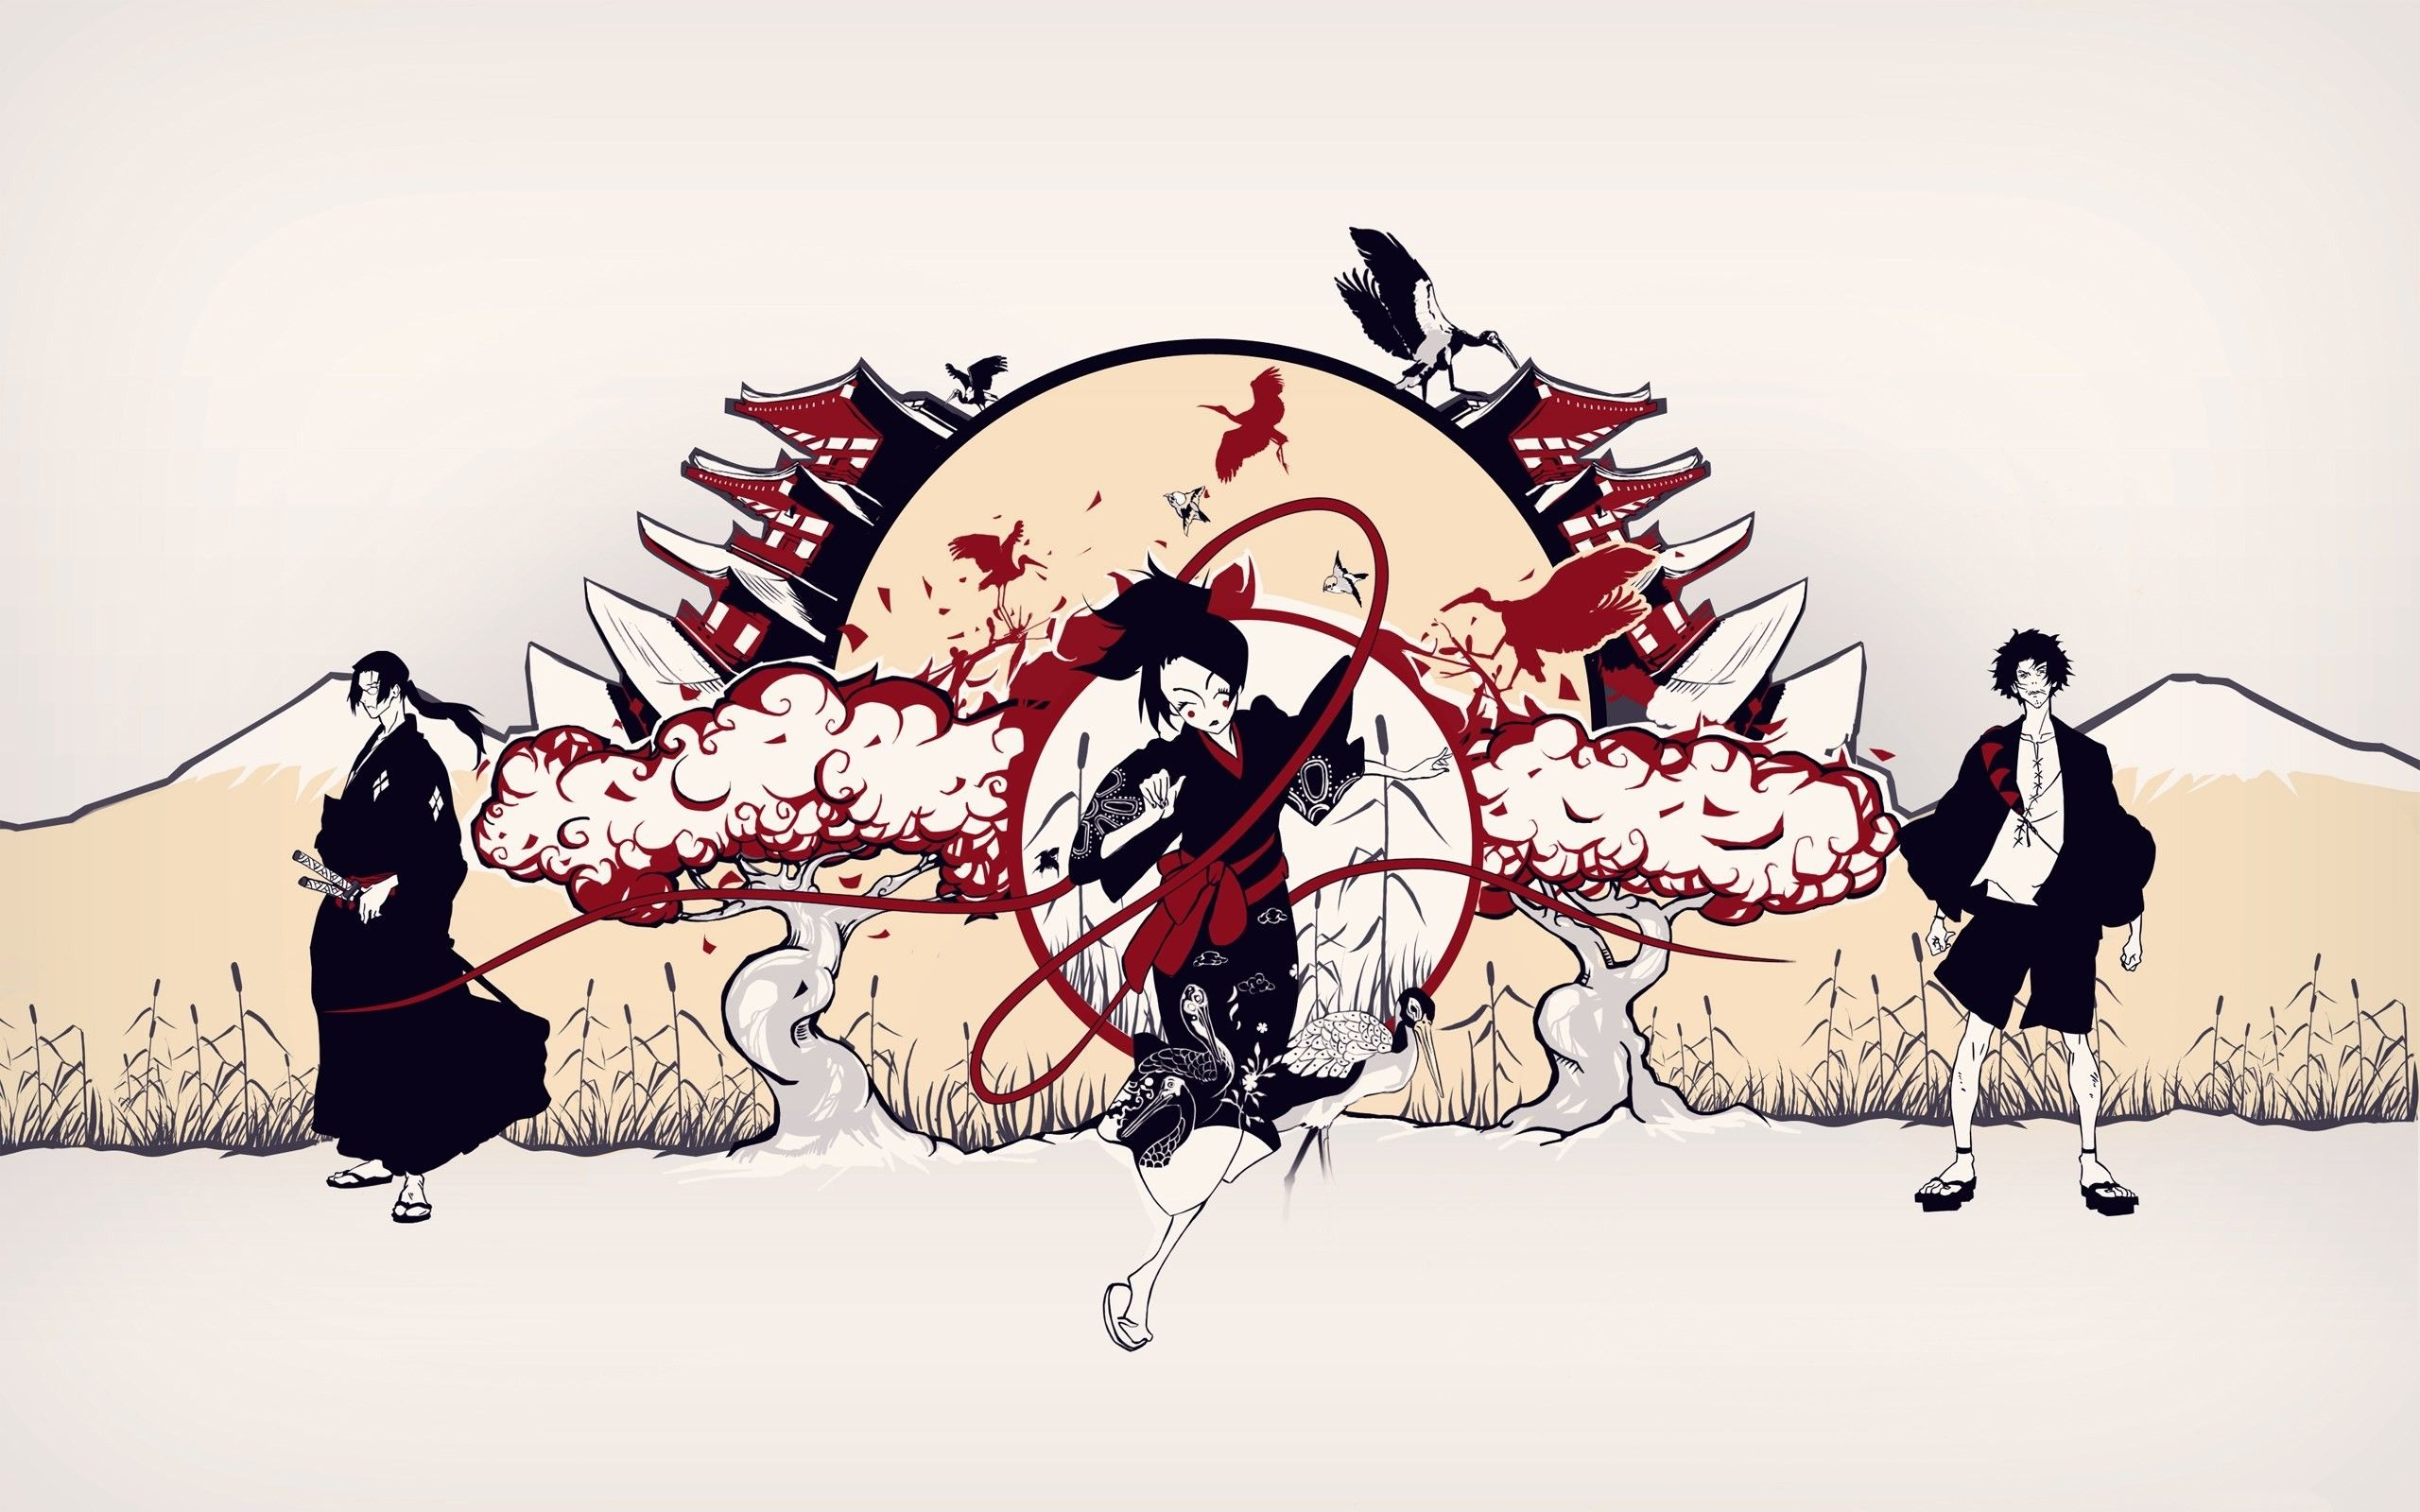 2560x1600 Explore Hd Wallpaper Wallpapers And More Samurai Champloo Samurai Champloo Anime Manga Anime